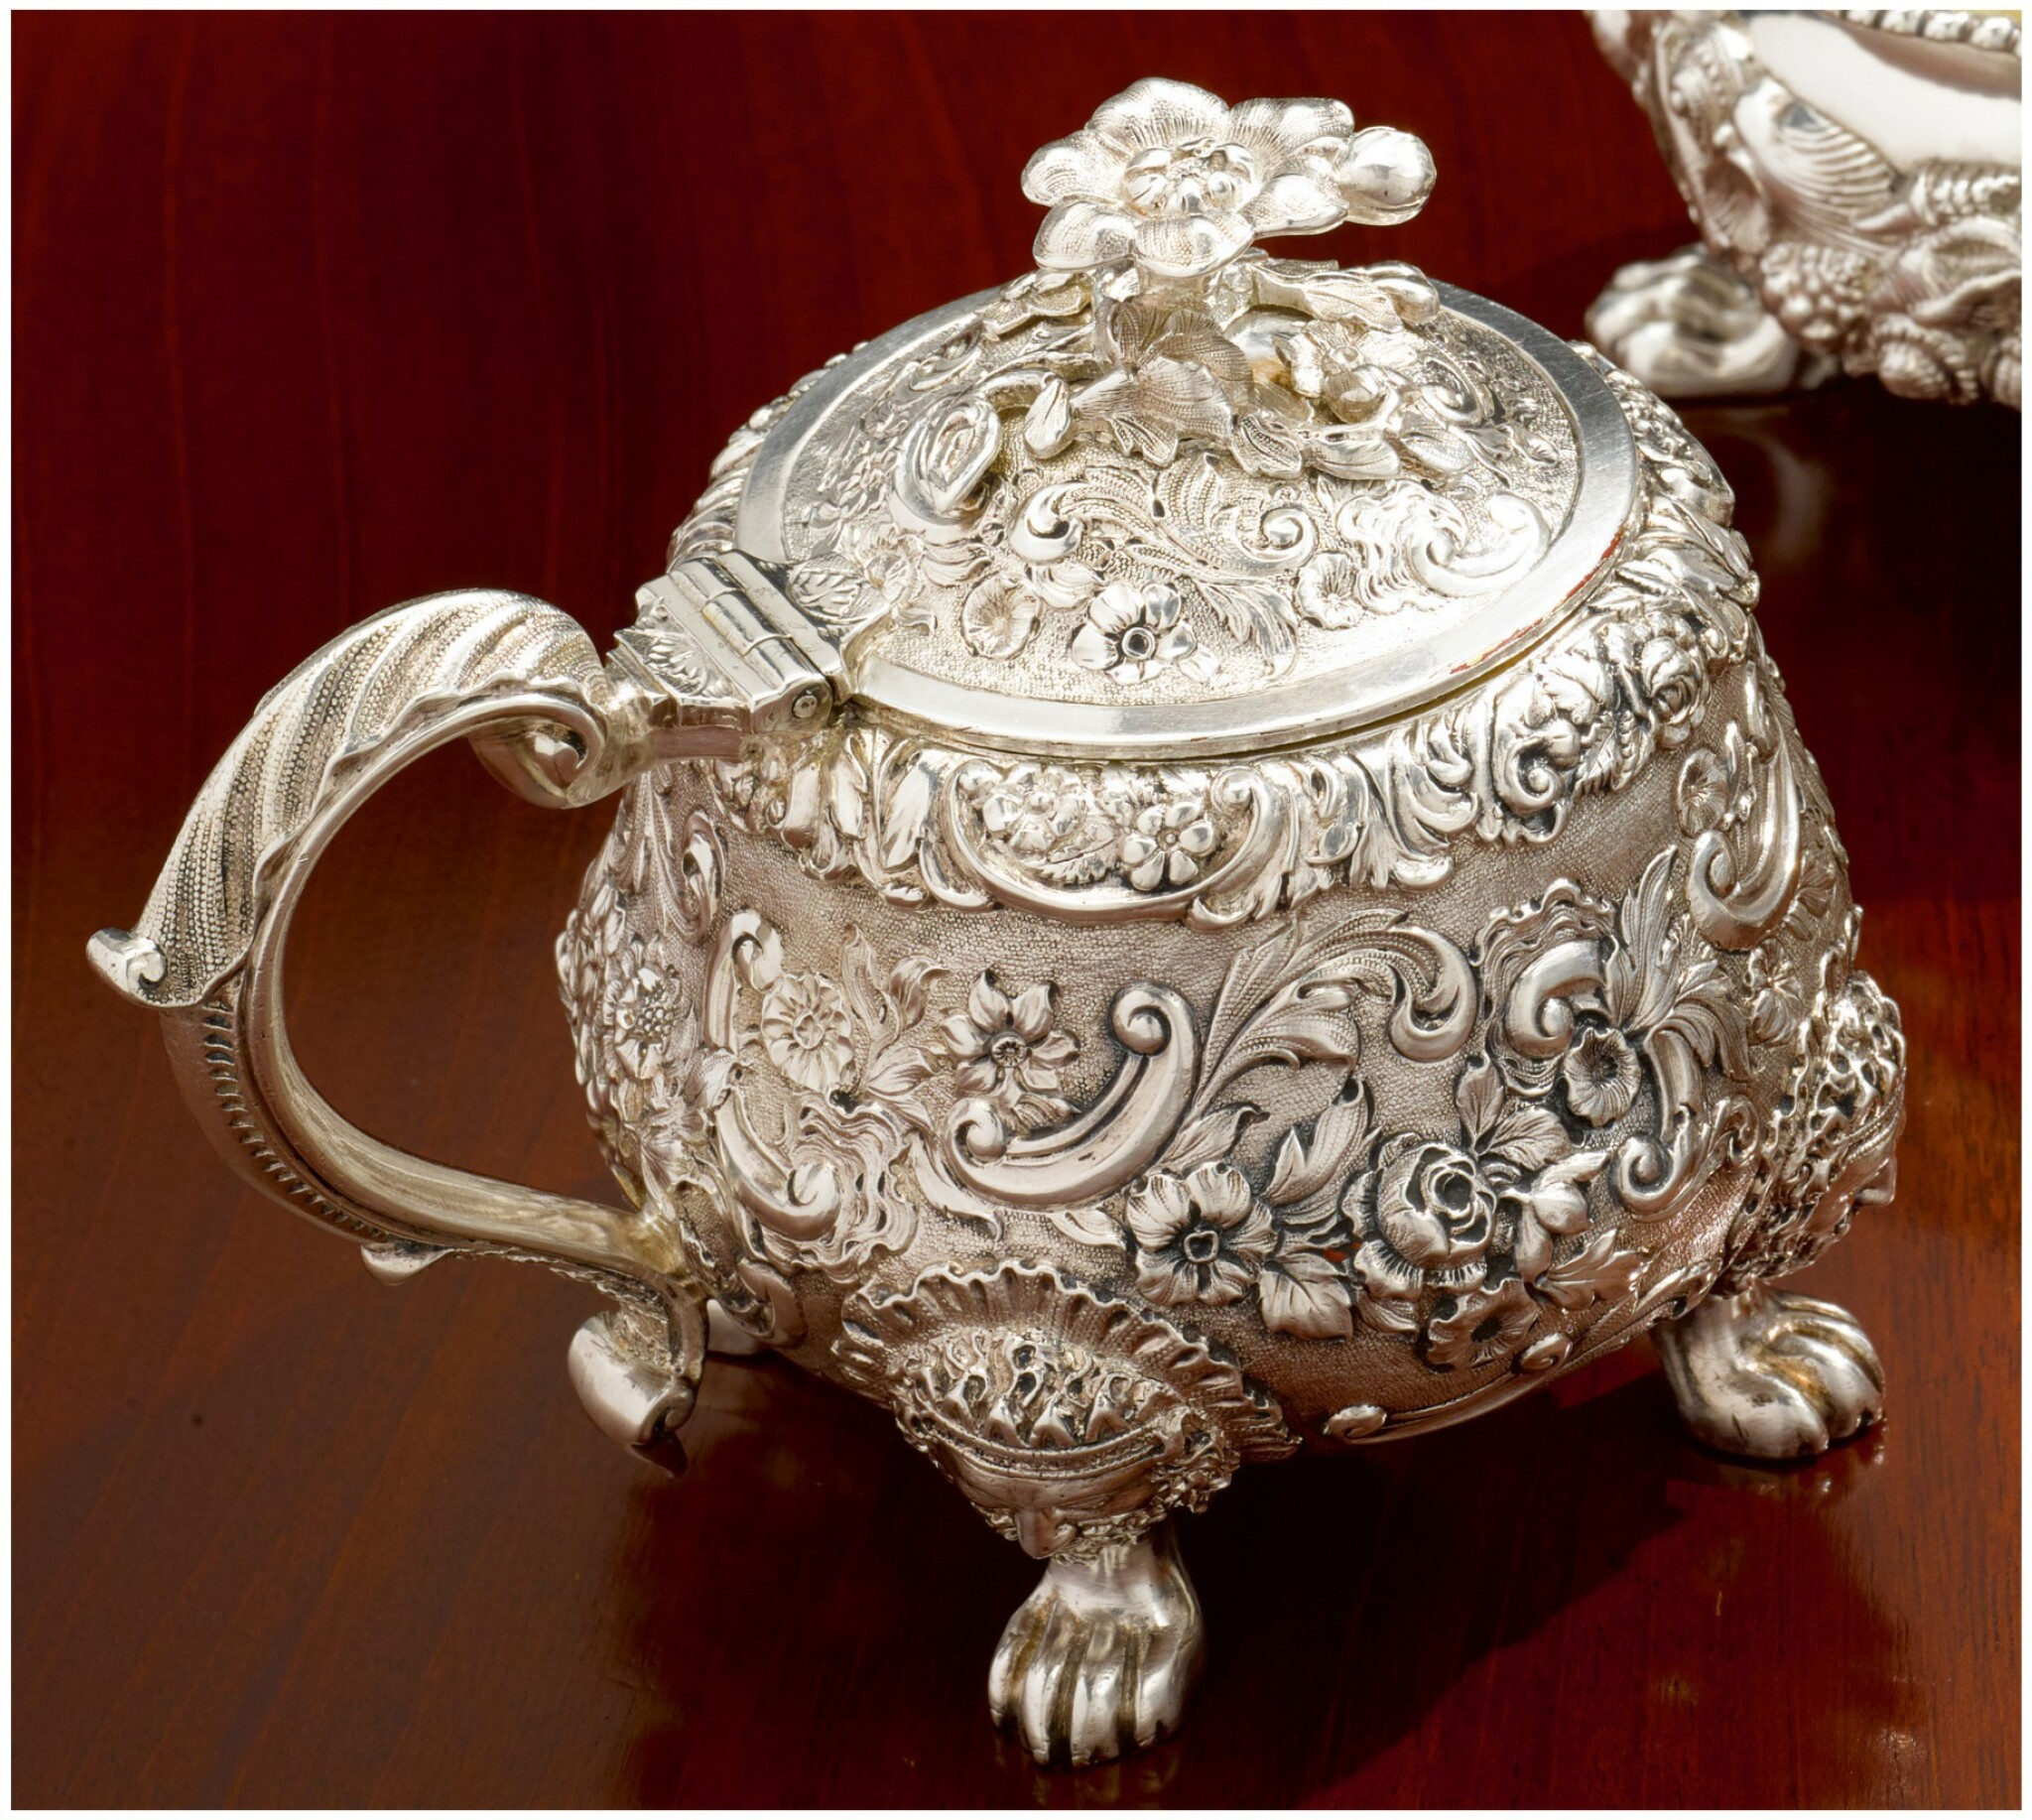 View full screen - View 1 of Lot 19. A GEORGE IV SILVER MUSTARD POT, PAUL STORR, LONDON, 1825.